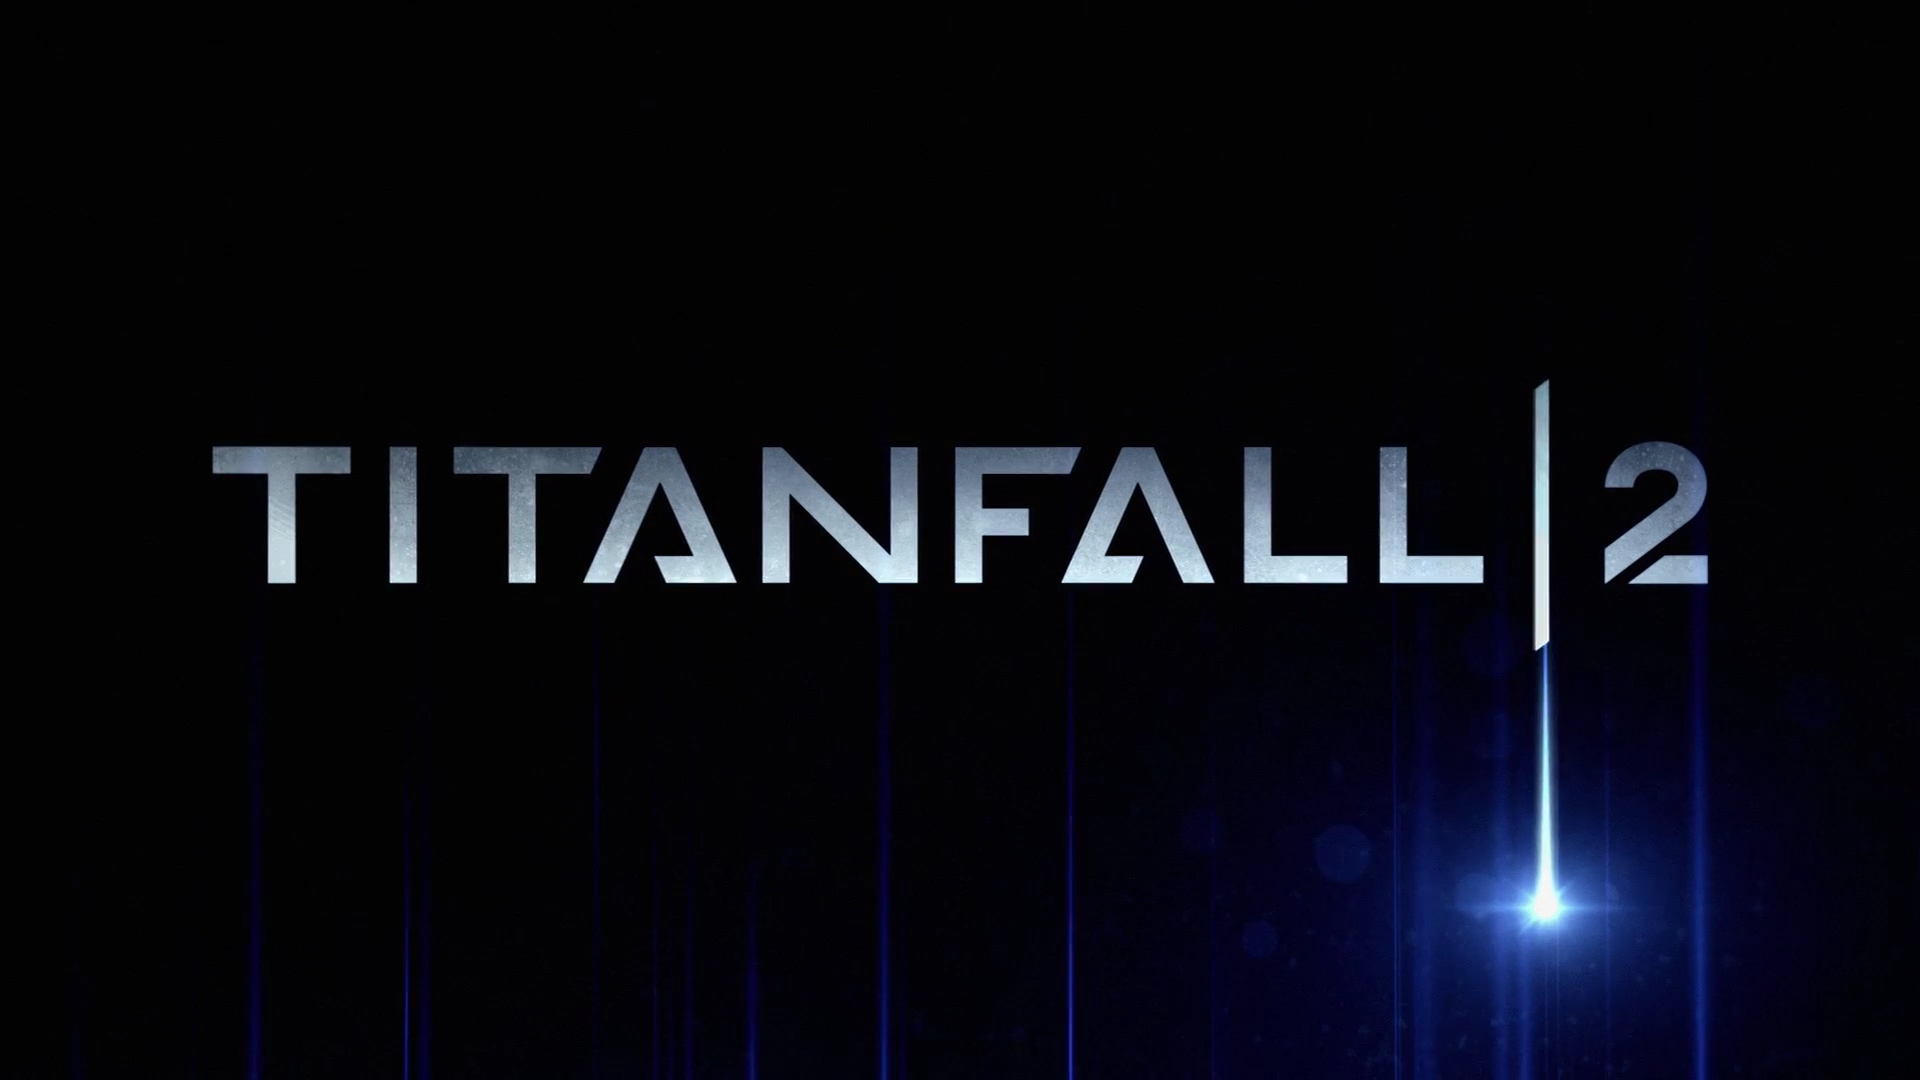 Titanfall 2 hd wallpaper background image 1920x1080 - Epic titanfall 2 wallpapers ...